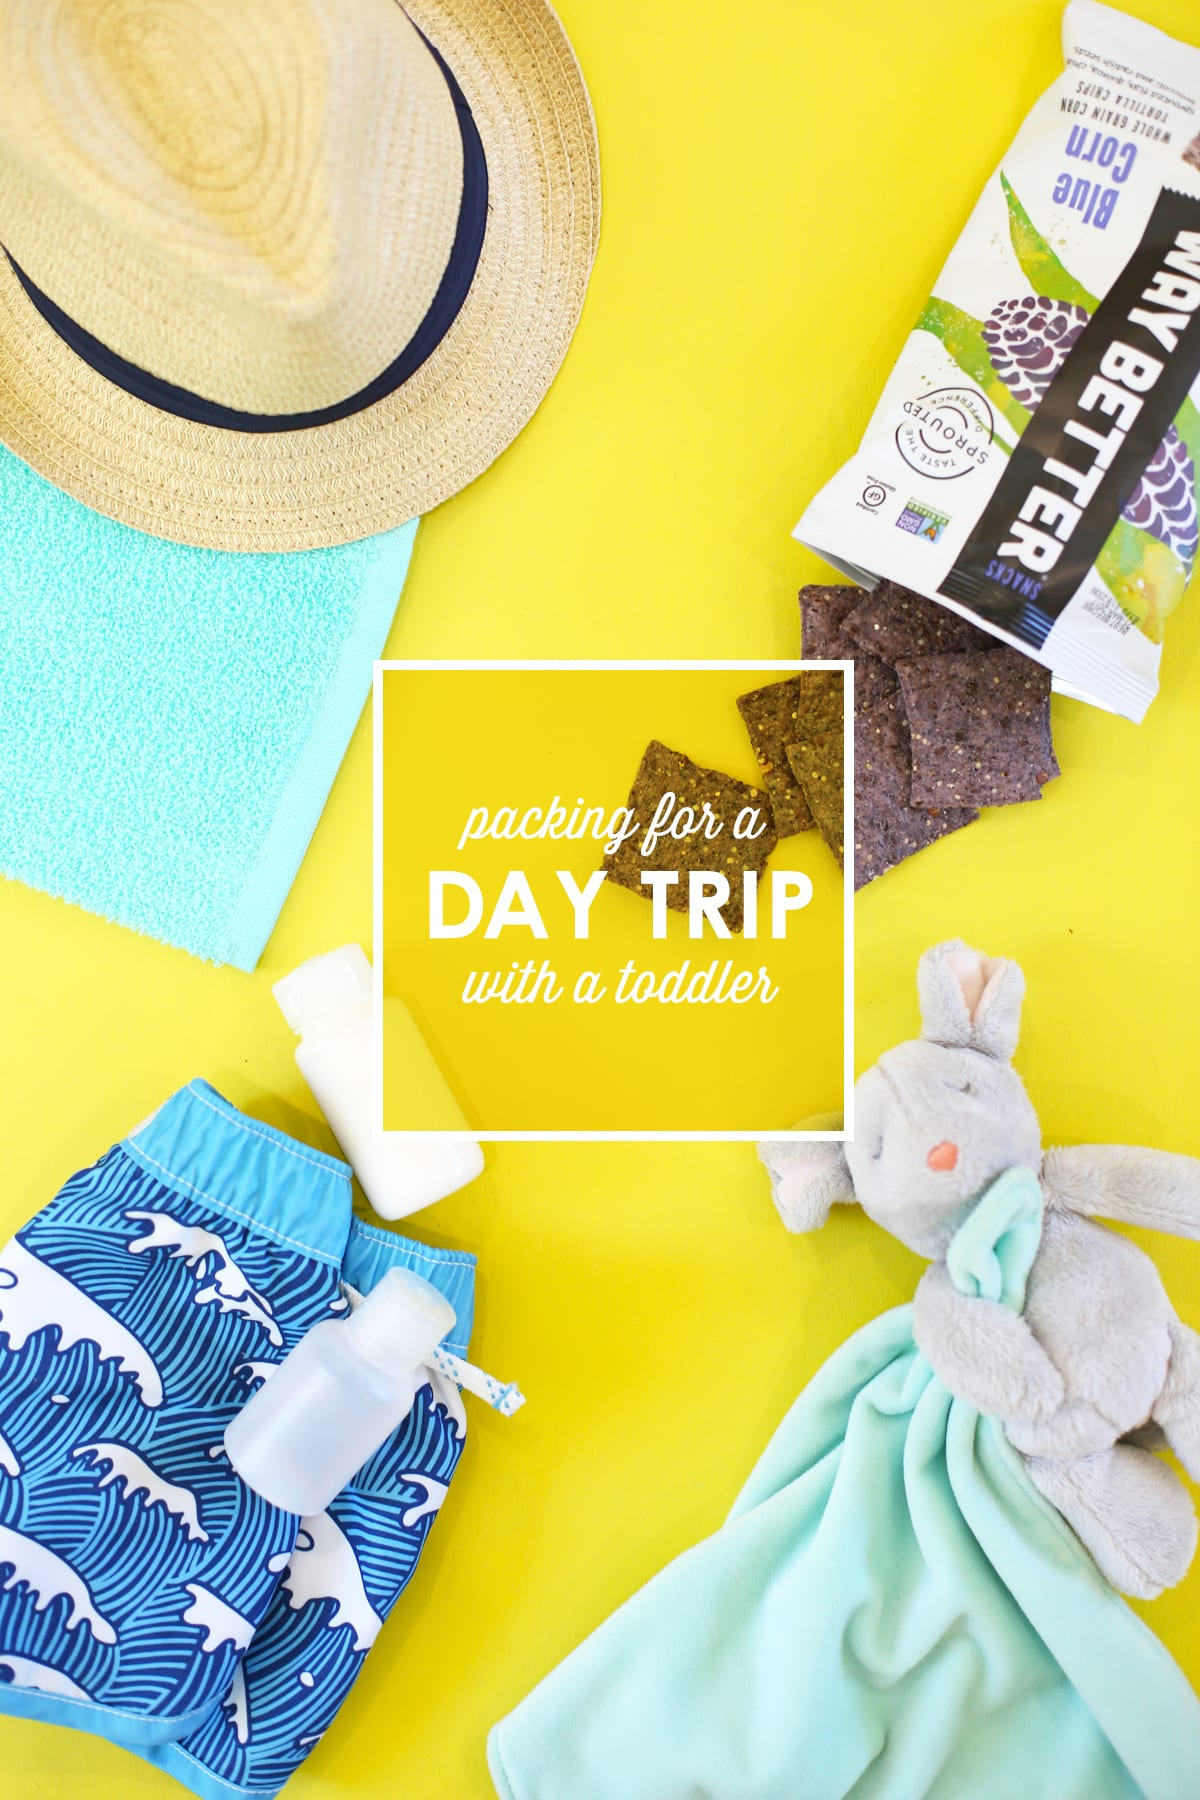 How to Pack for a Day Trip with a Toddler